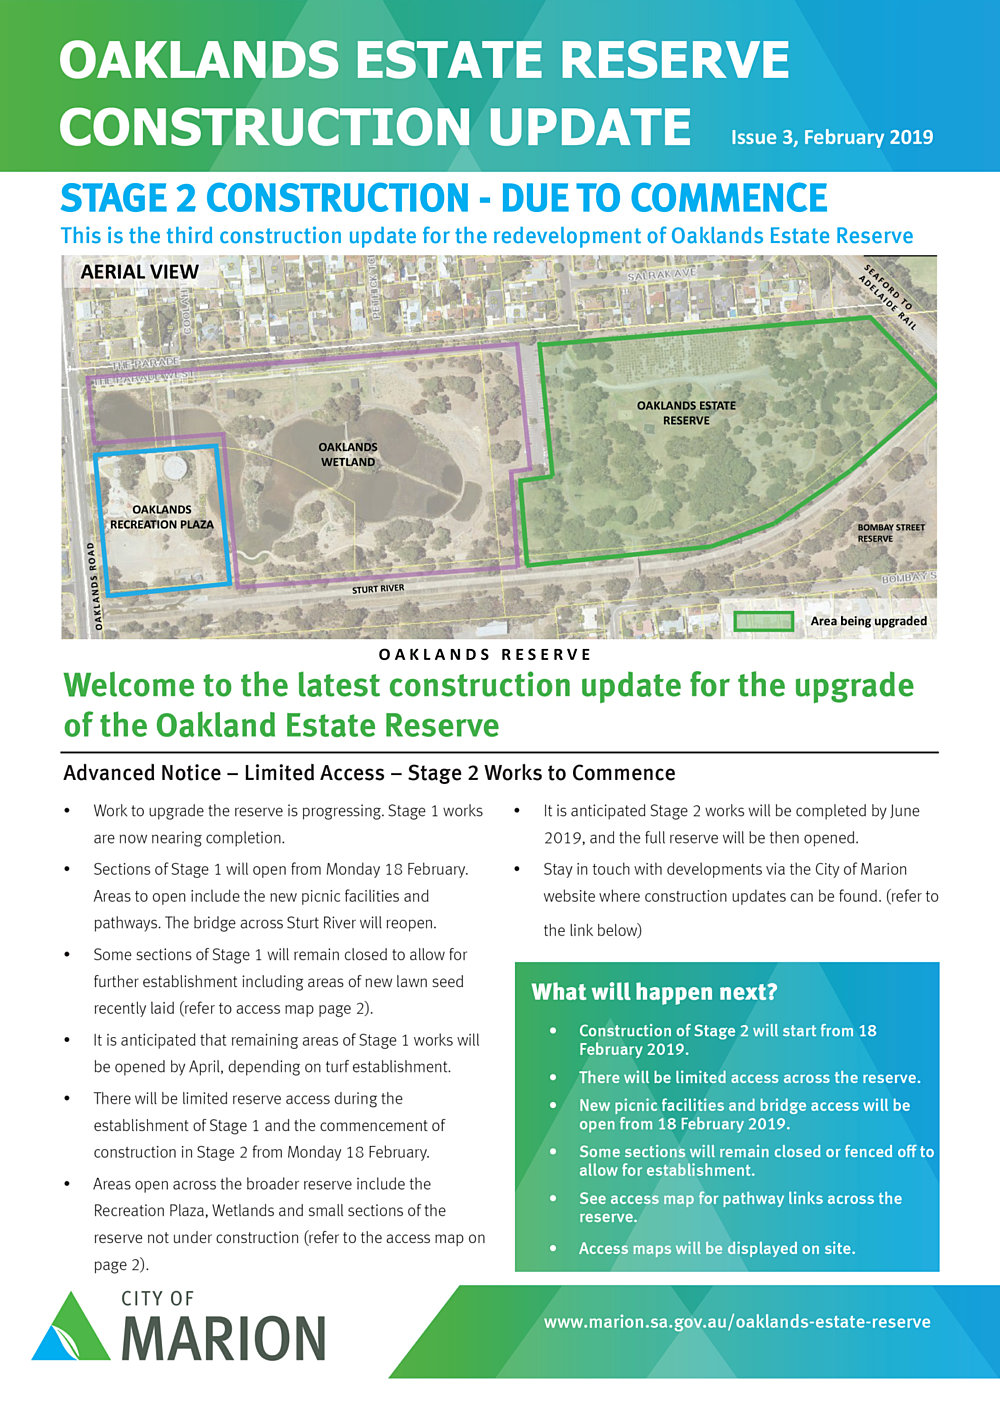 Oaklands Estate Reserve Construction Update Issue 3 February 2019 Pg1